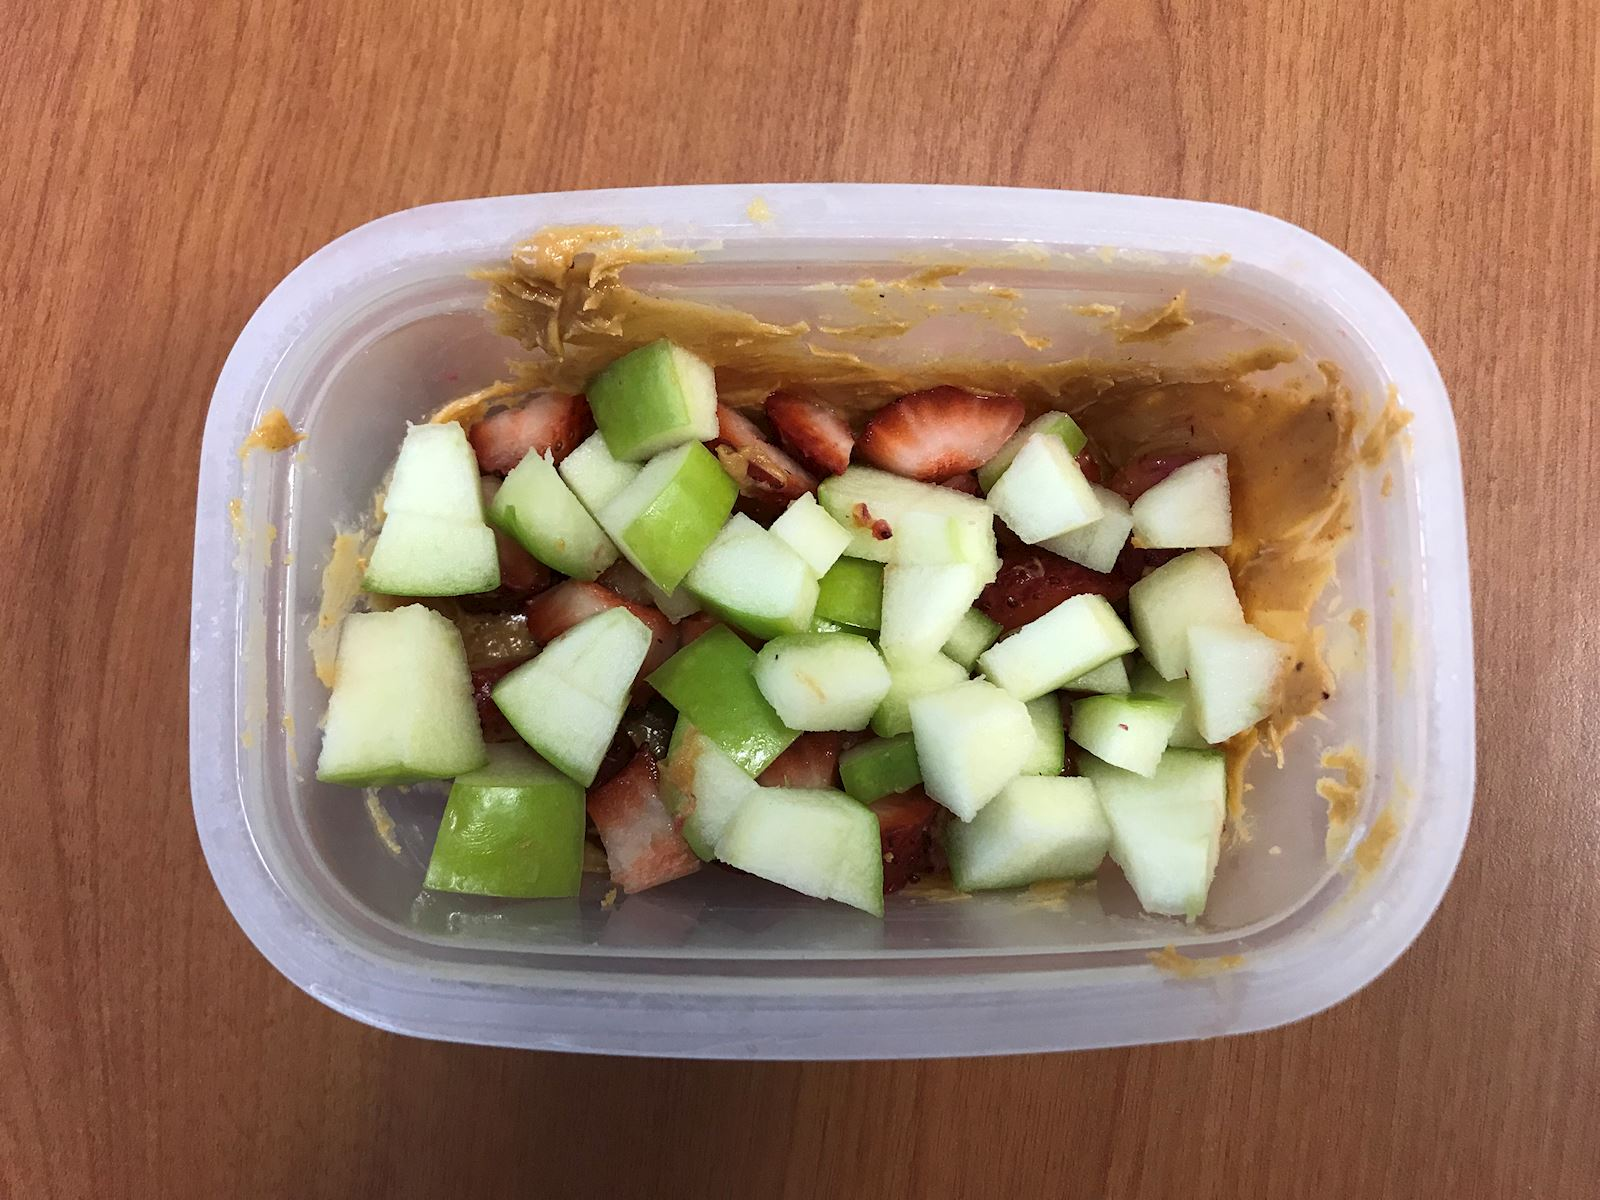 apples and strawberries on peanut butter